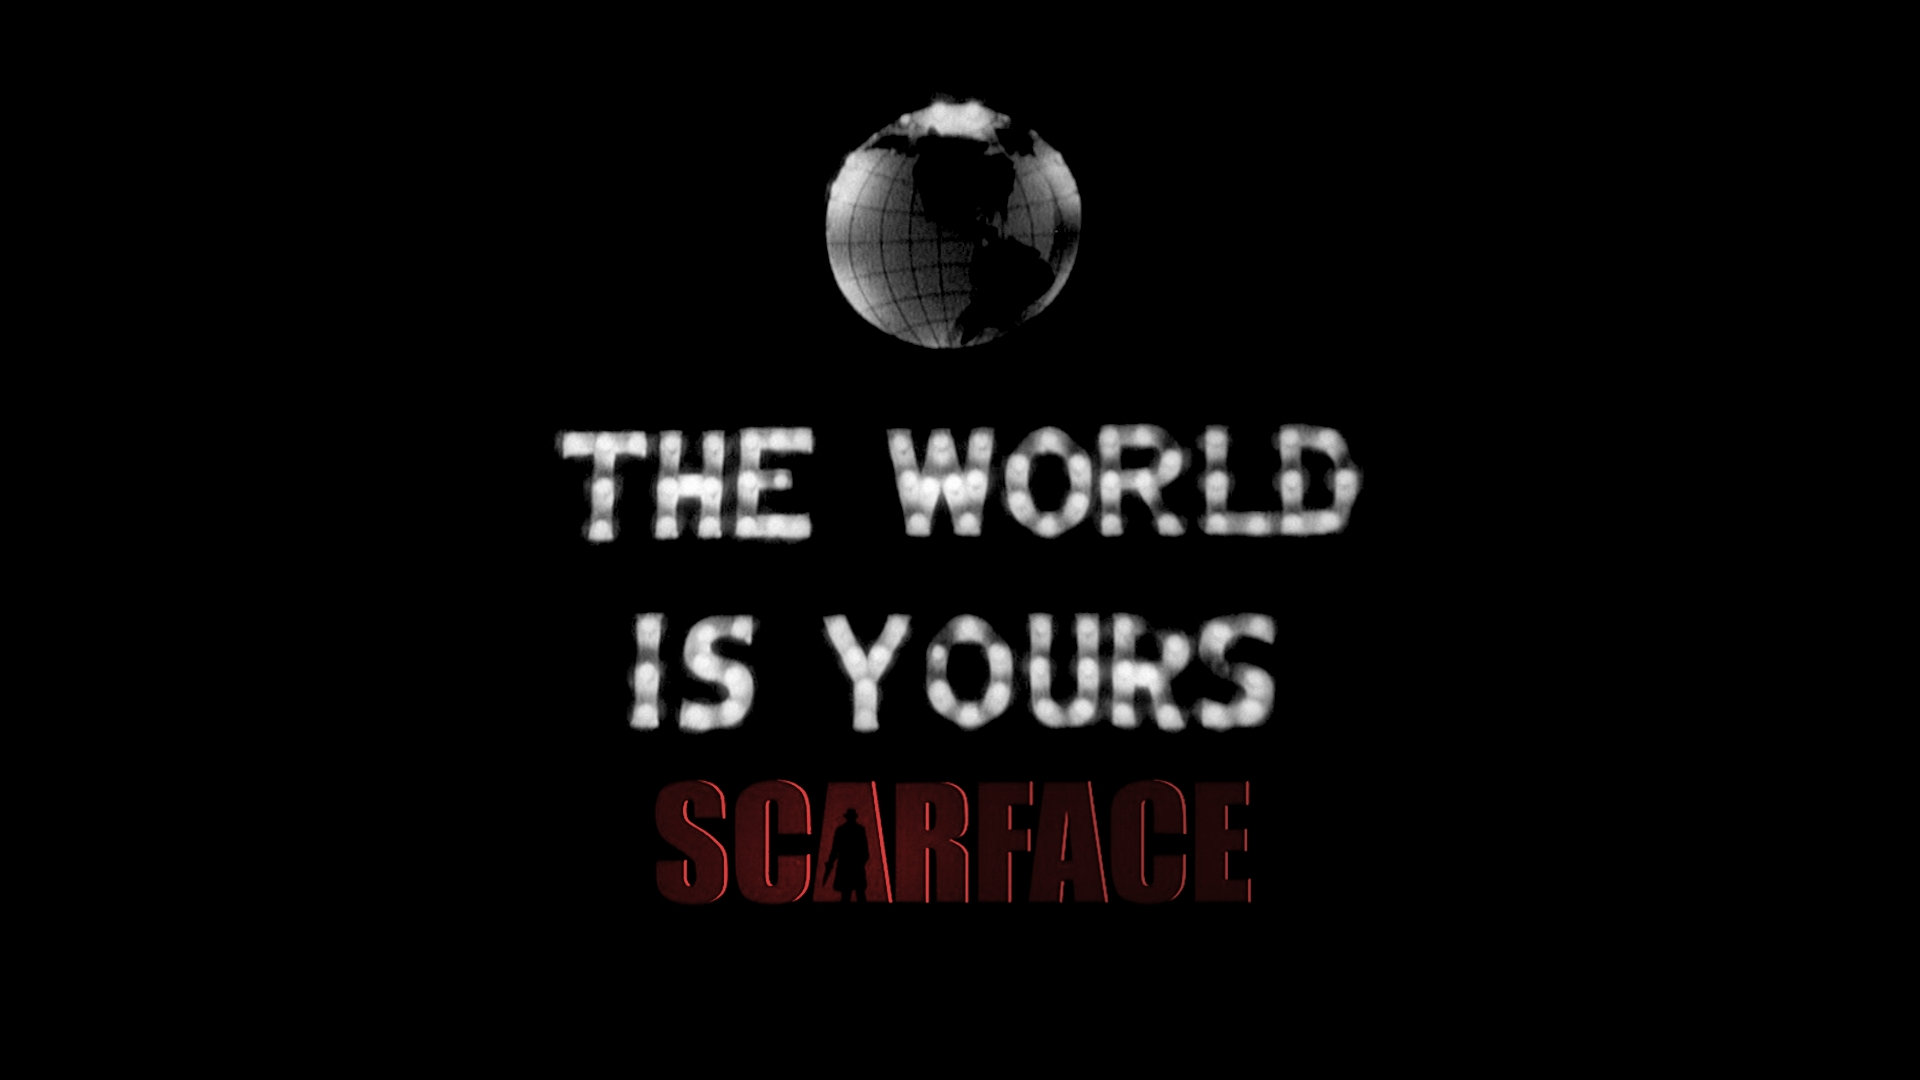 The Sopranos Iphone Wallpaper Scarface 1932 And Its X Motif M00ch S M00vies